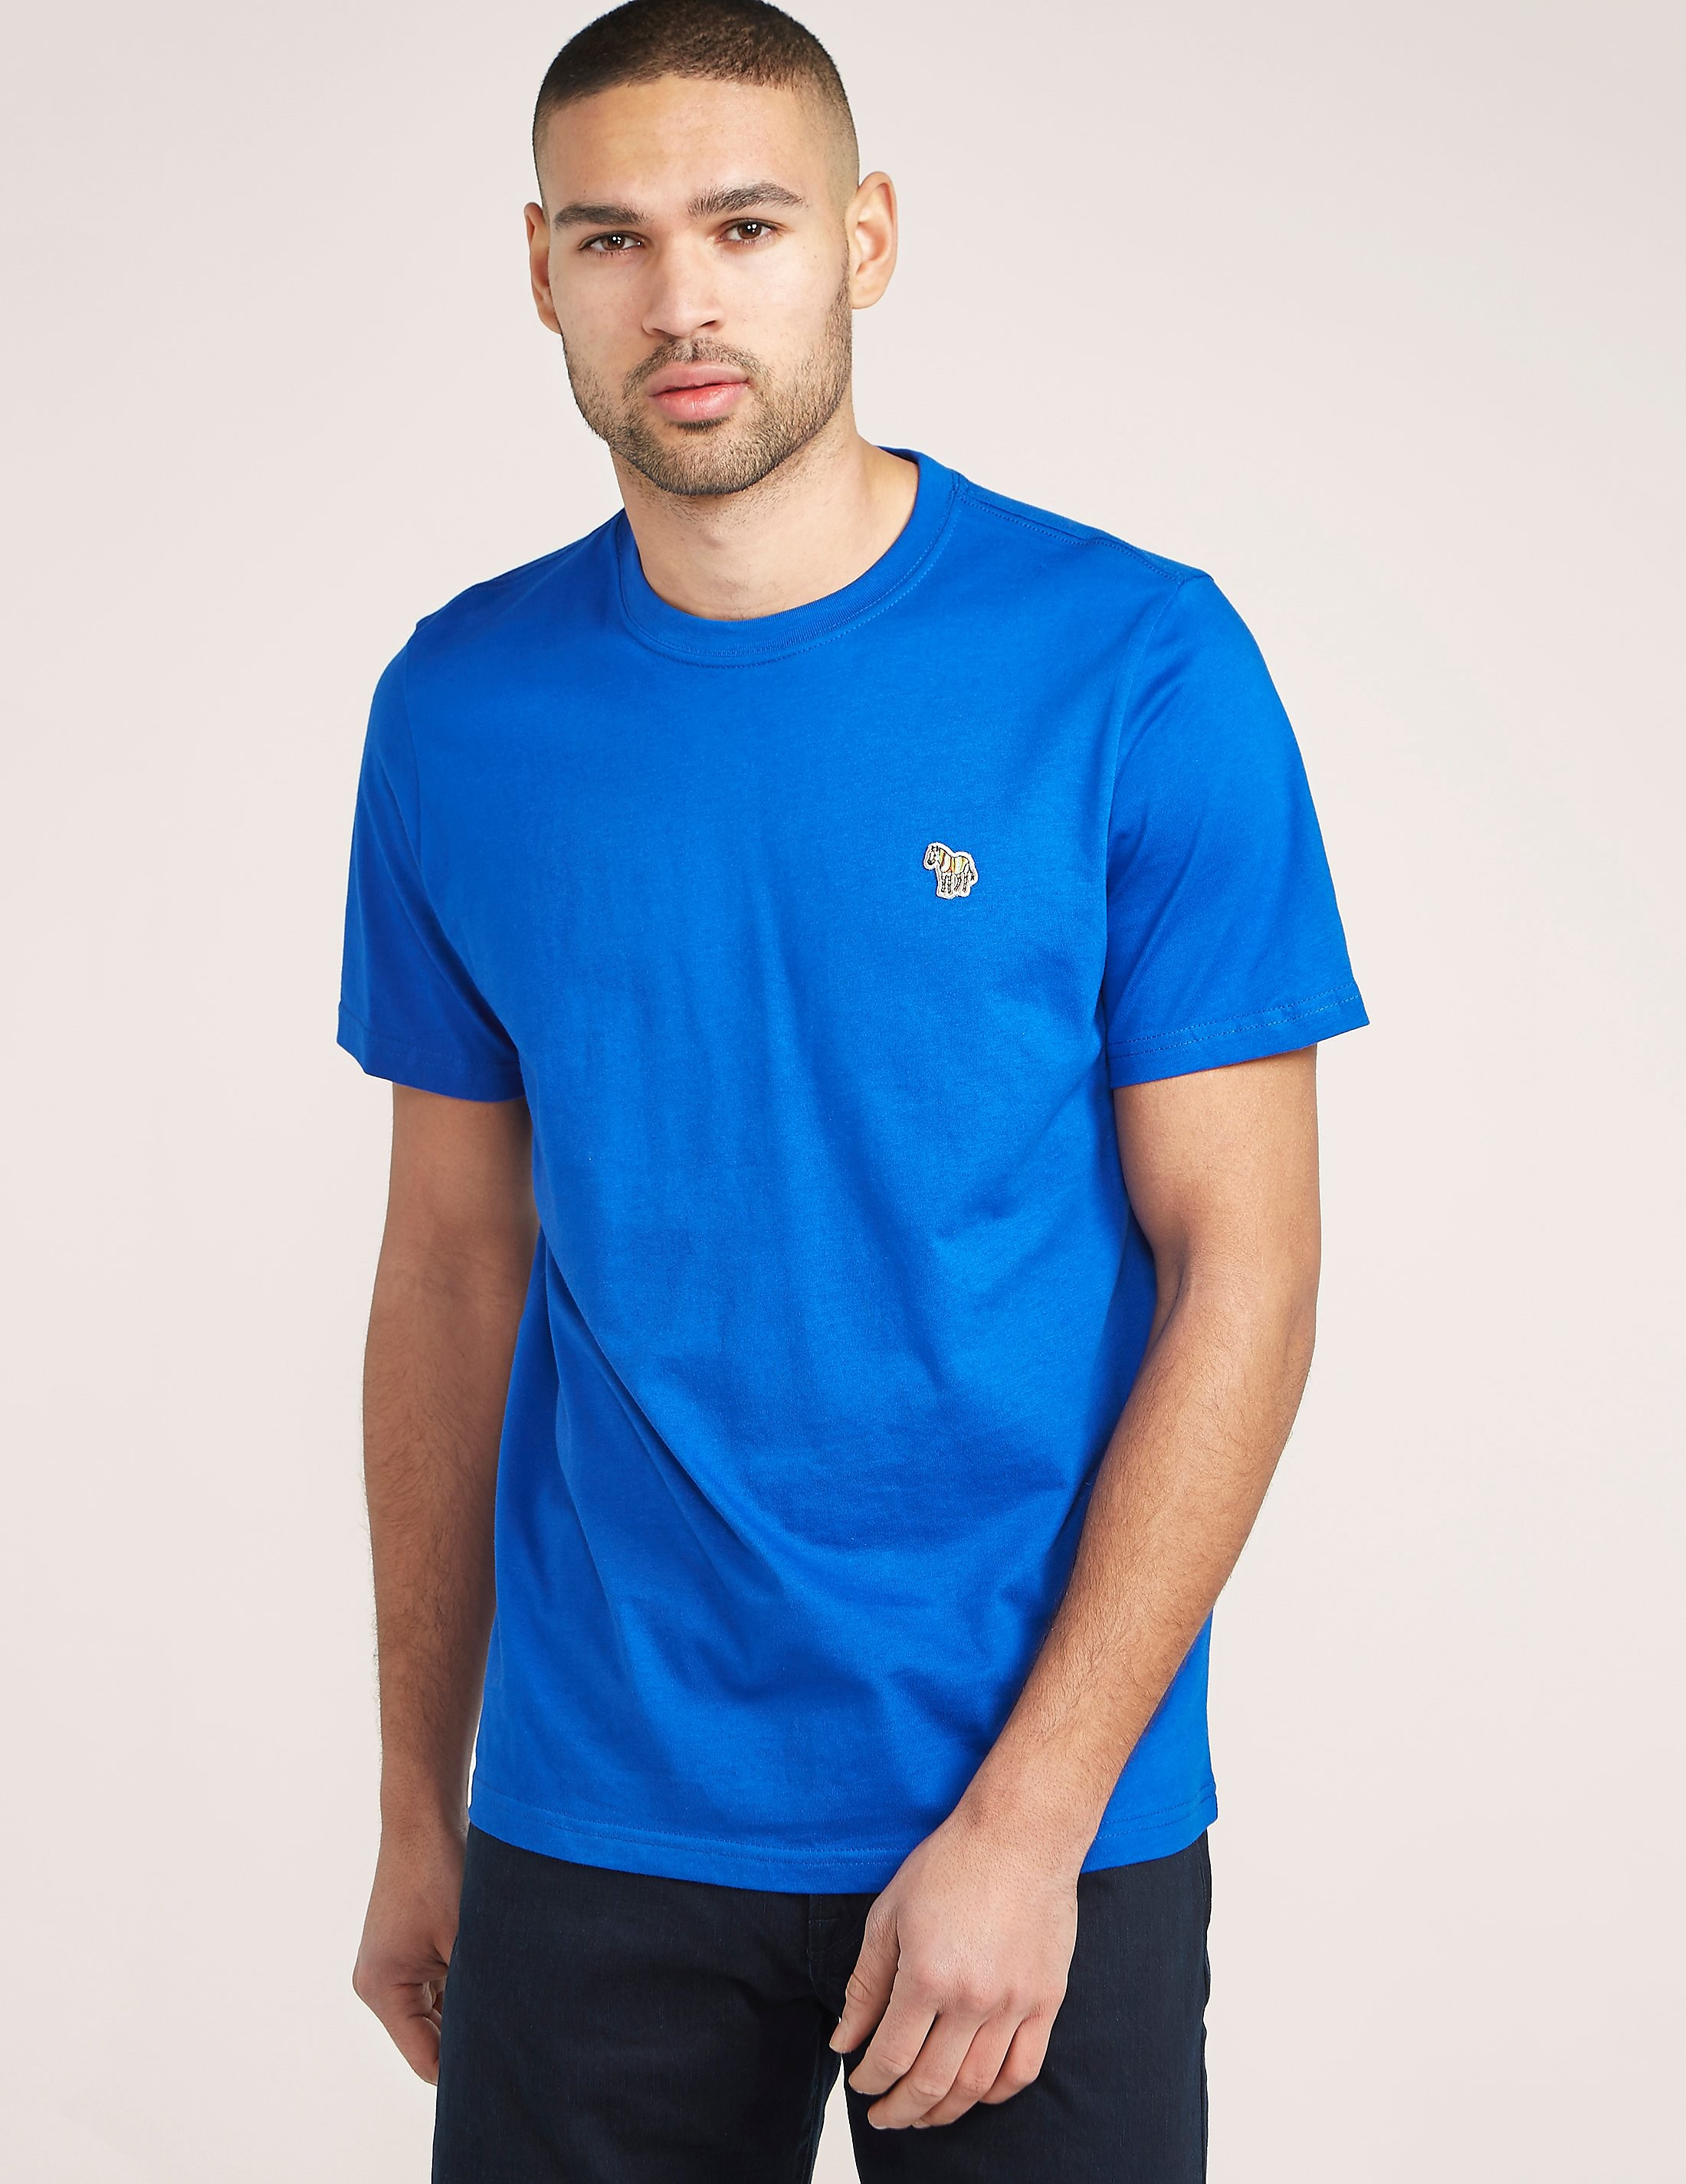 Paul Smith Zebra Logo Short Sleeve T-Shirt